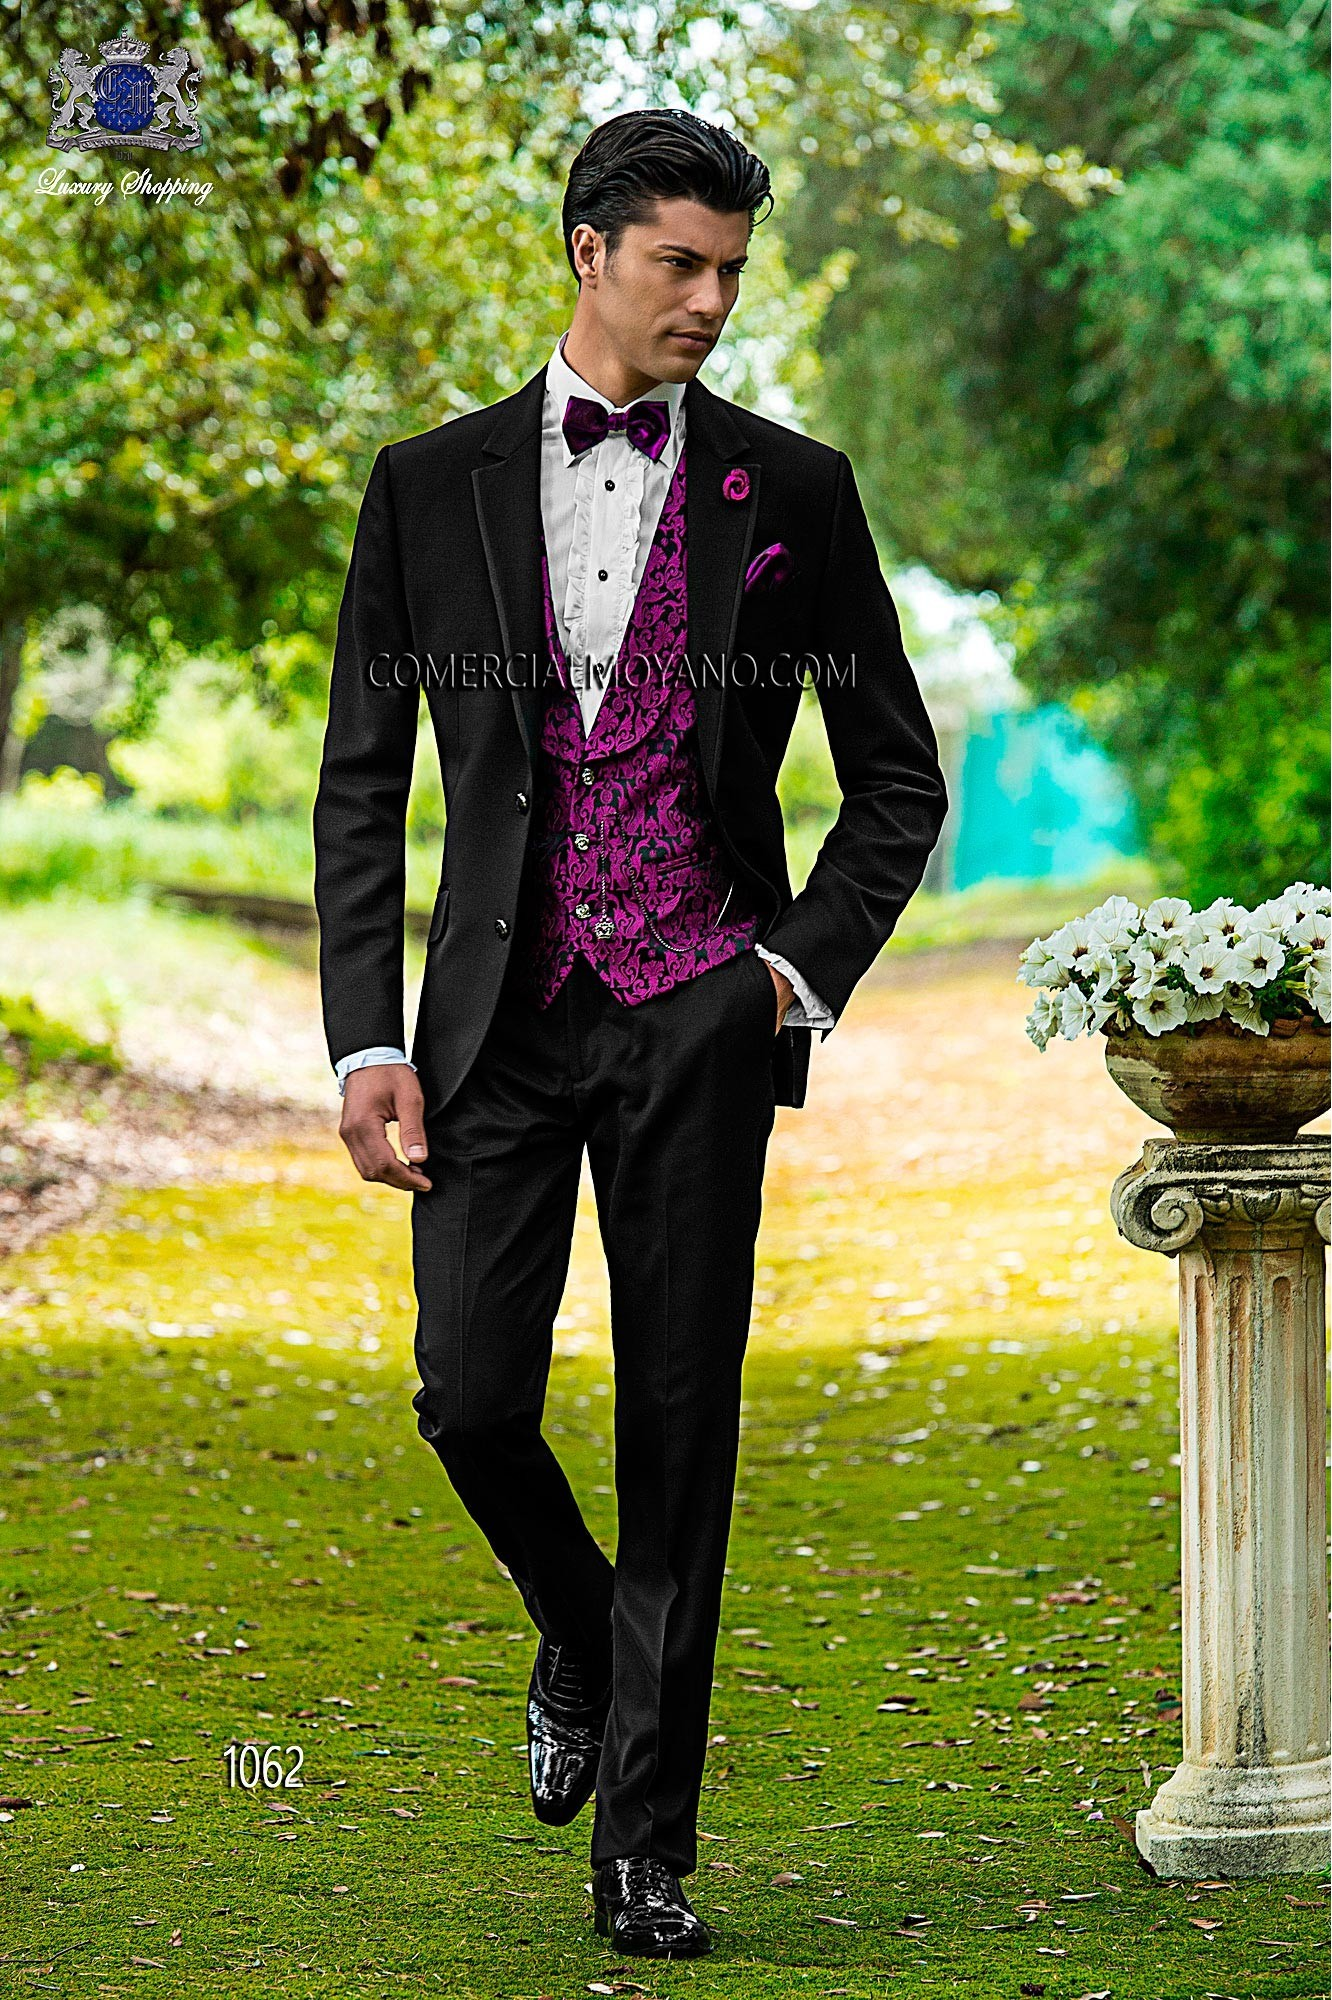 Fashion black men wedding suit model 1062 Ottavio Nuccio Gala